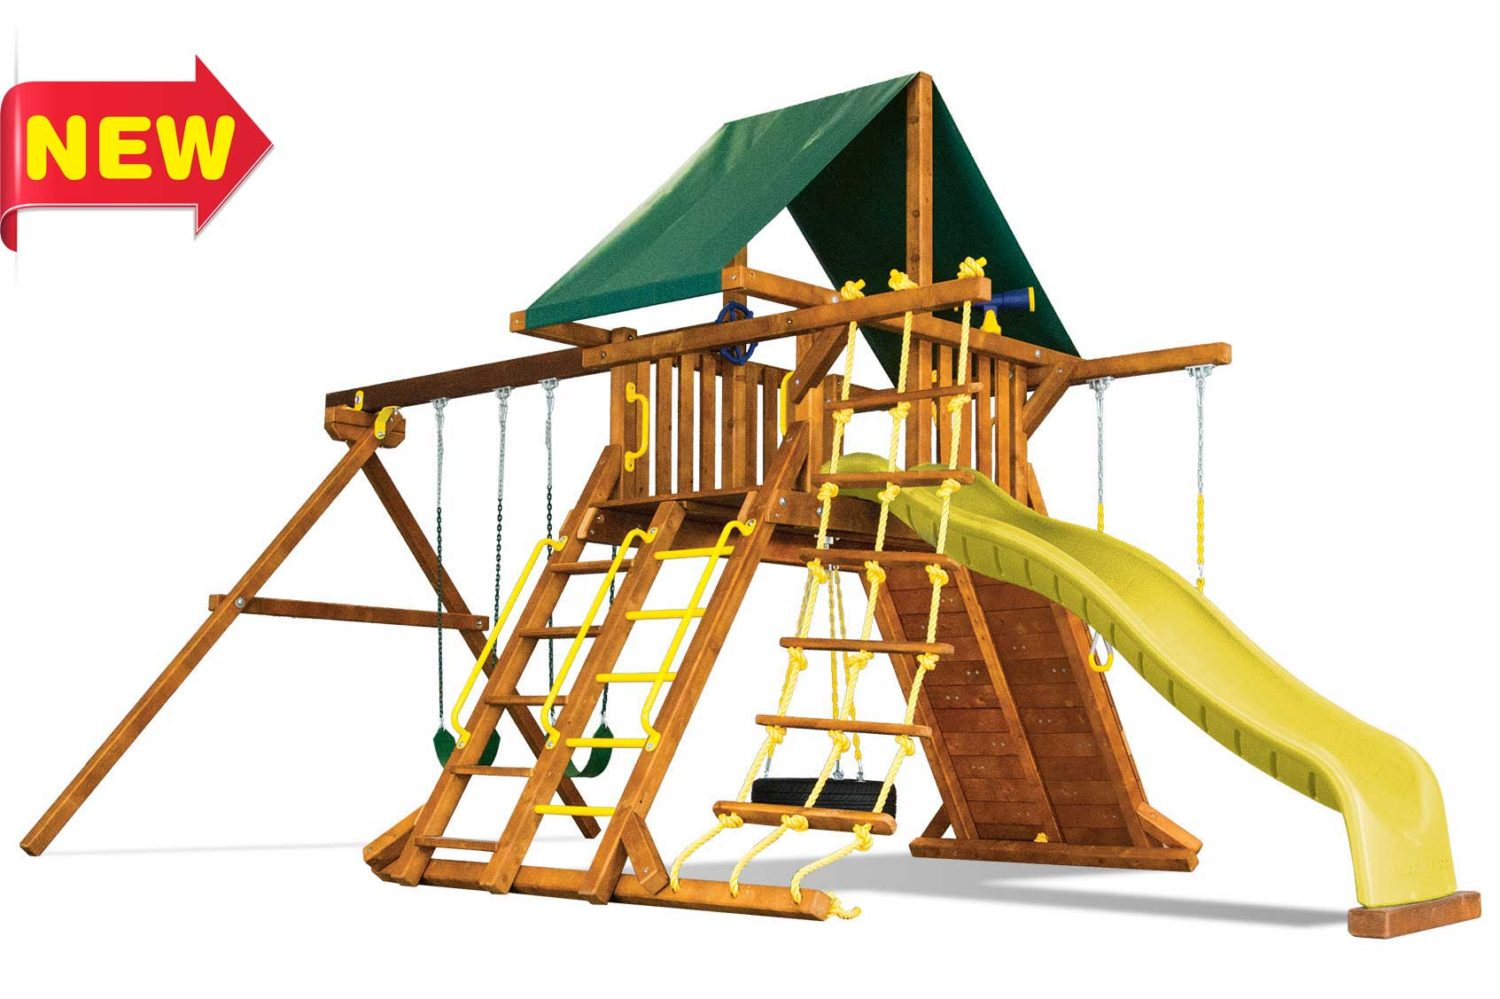 Circus Turbo Castle Pkg II with 2 Position Swing Beam Wooden Swing Set